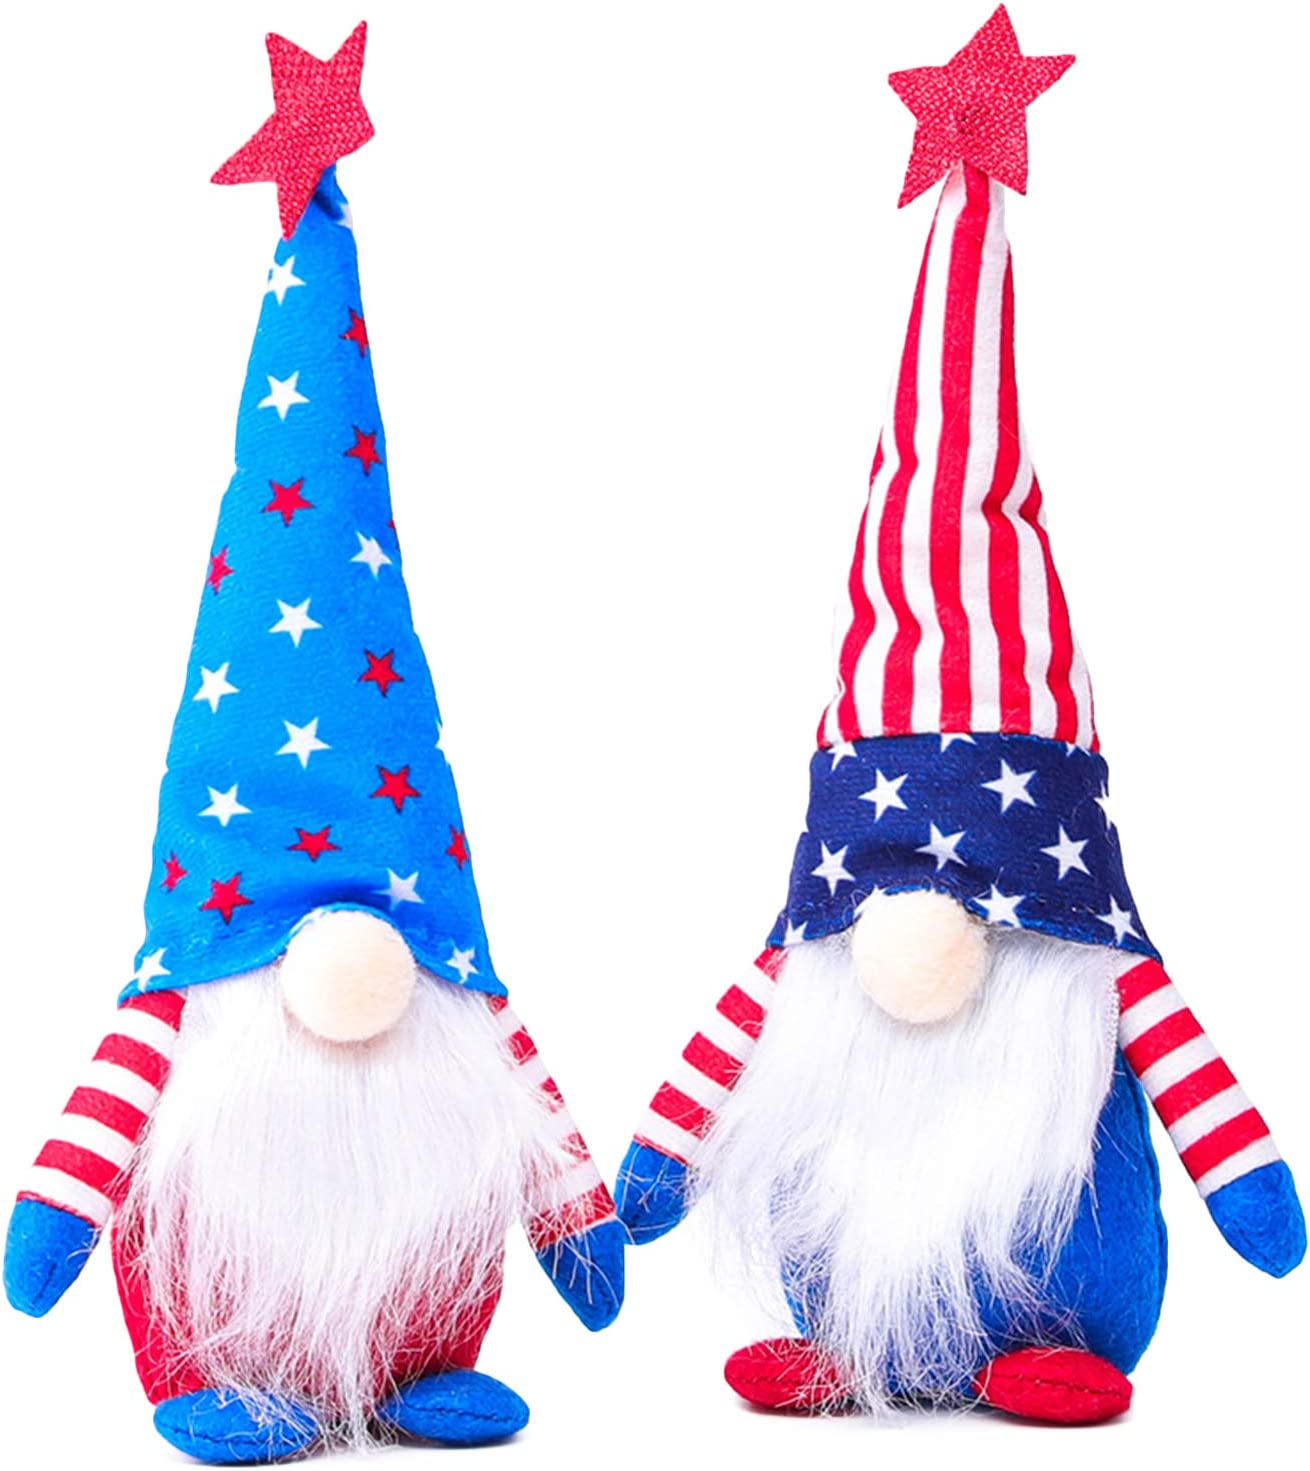 Mwfus Independence Day Gnome Plush Doll Top Hat Elf Cloth Dolls Adornment Table Decor for 4th of July Patriotic Party Supplies